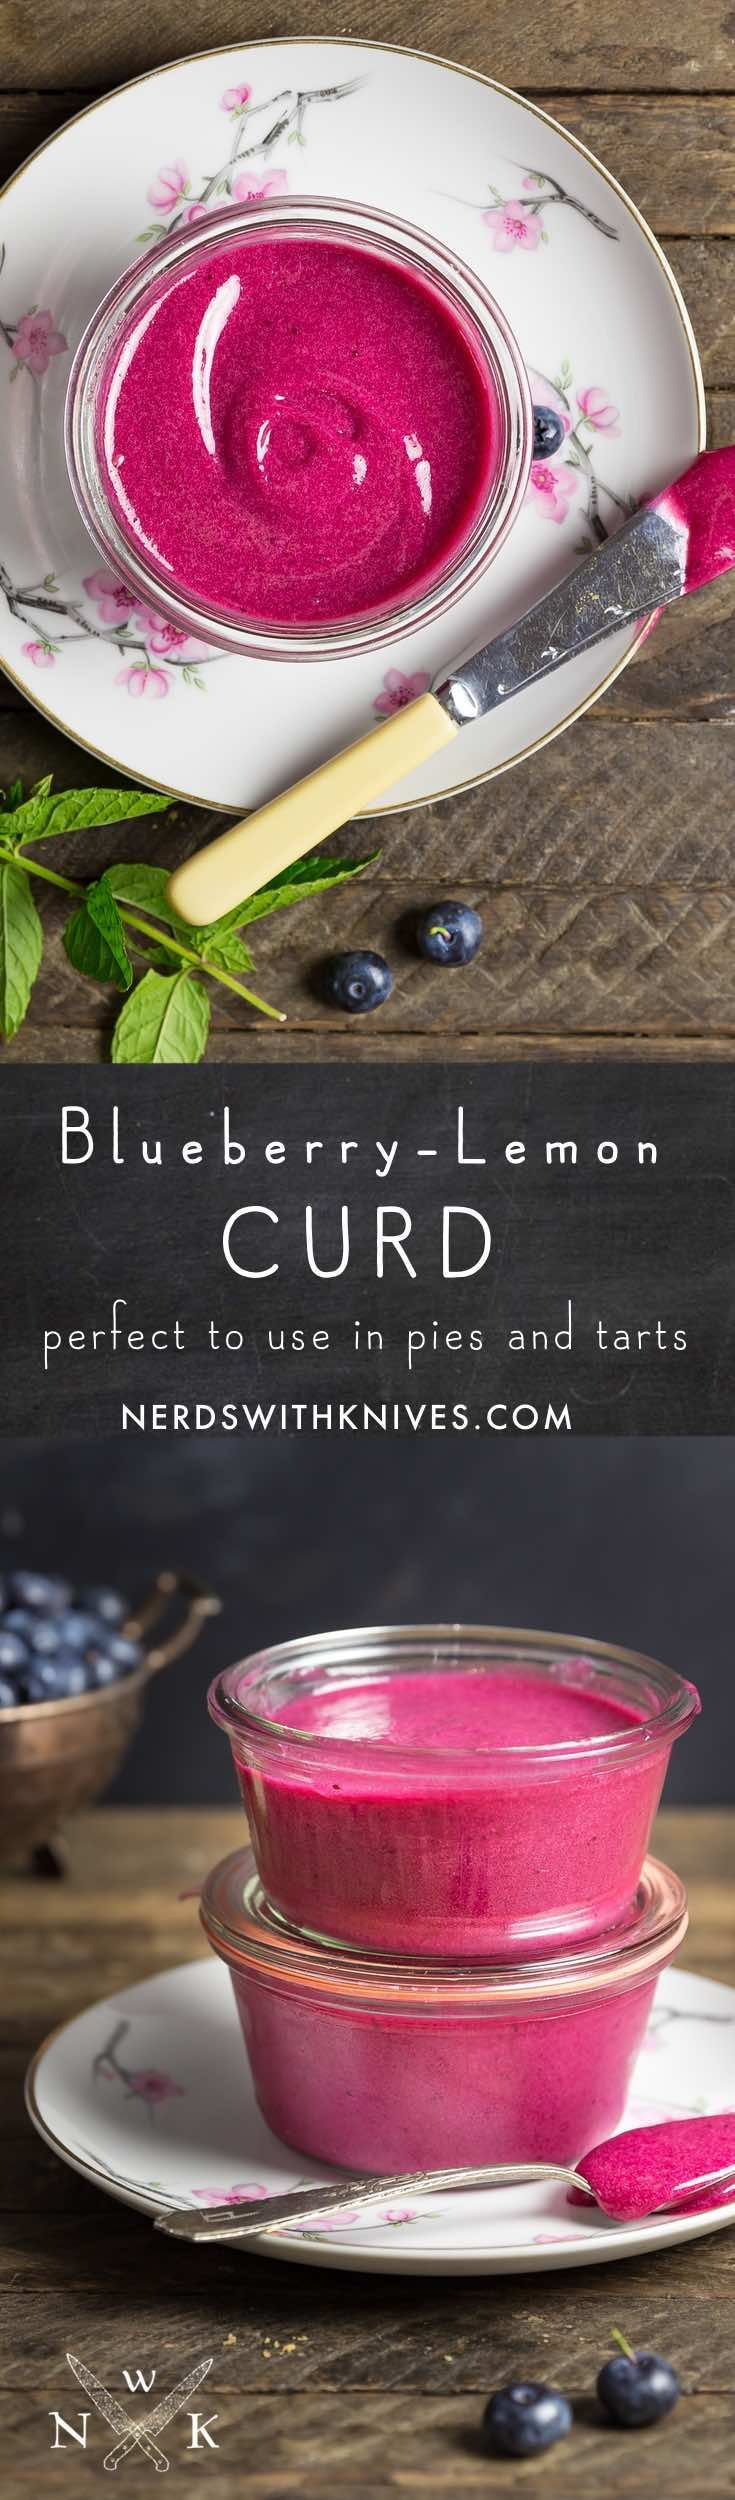 Blueberry lemon curd is a gorgeously colorful and delicious fruit curd that will dazzle your breakfast or dessert table.